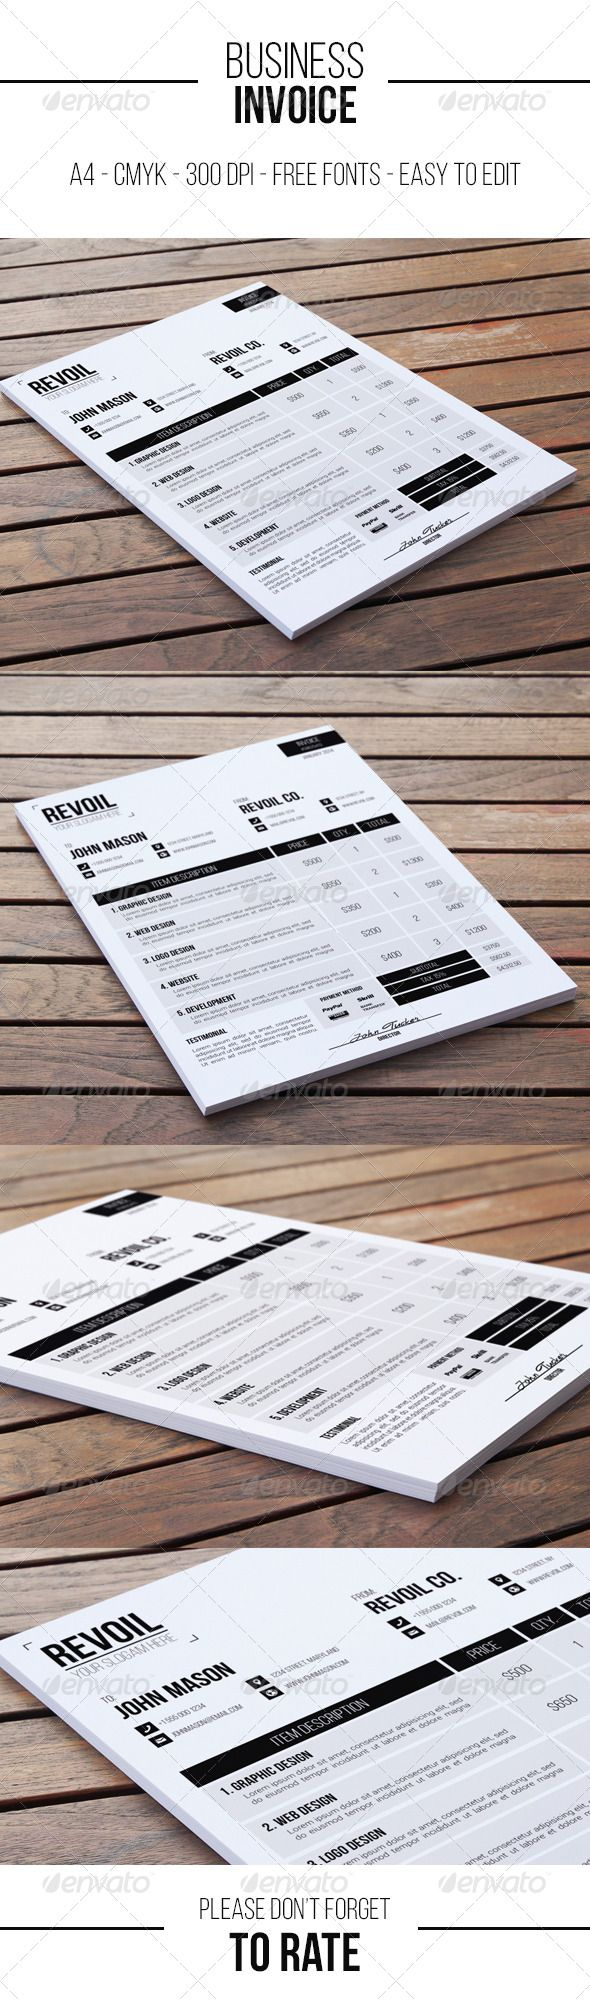 Business Invoice Proposals u0026 Invoices Stationery